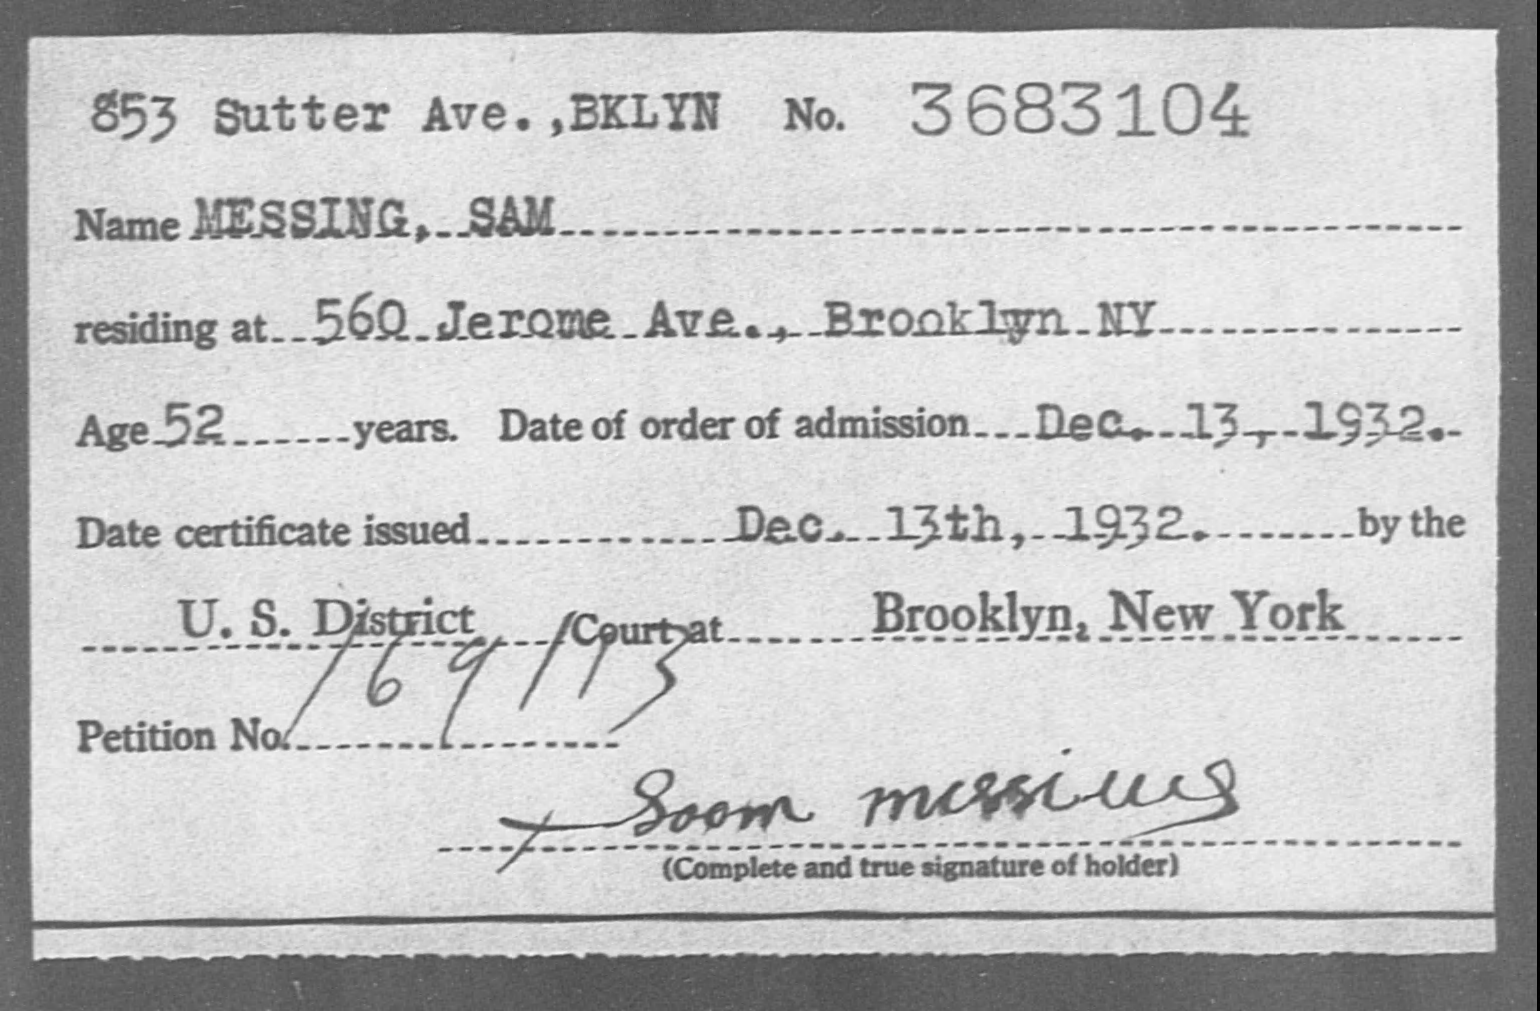 MESSING, SAM - Born: [BLANK], Naturalized: 1932